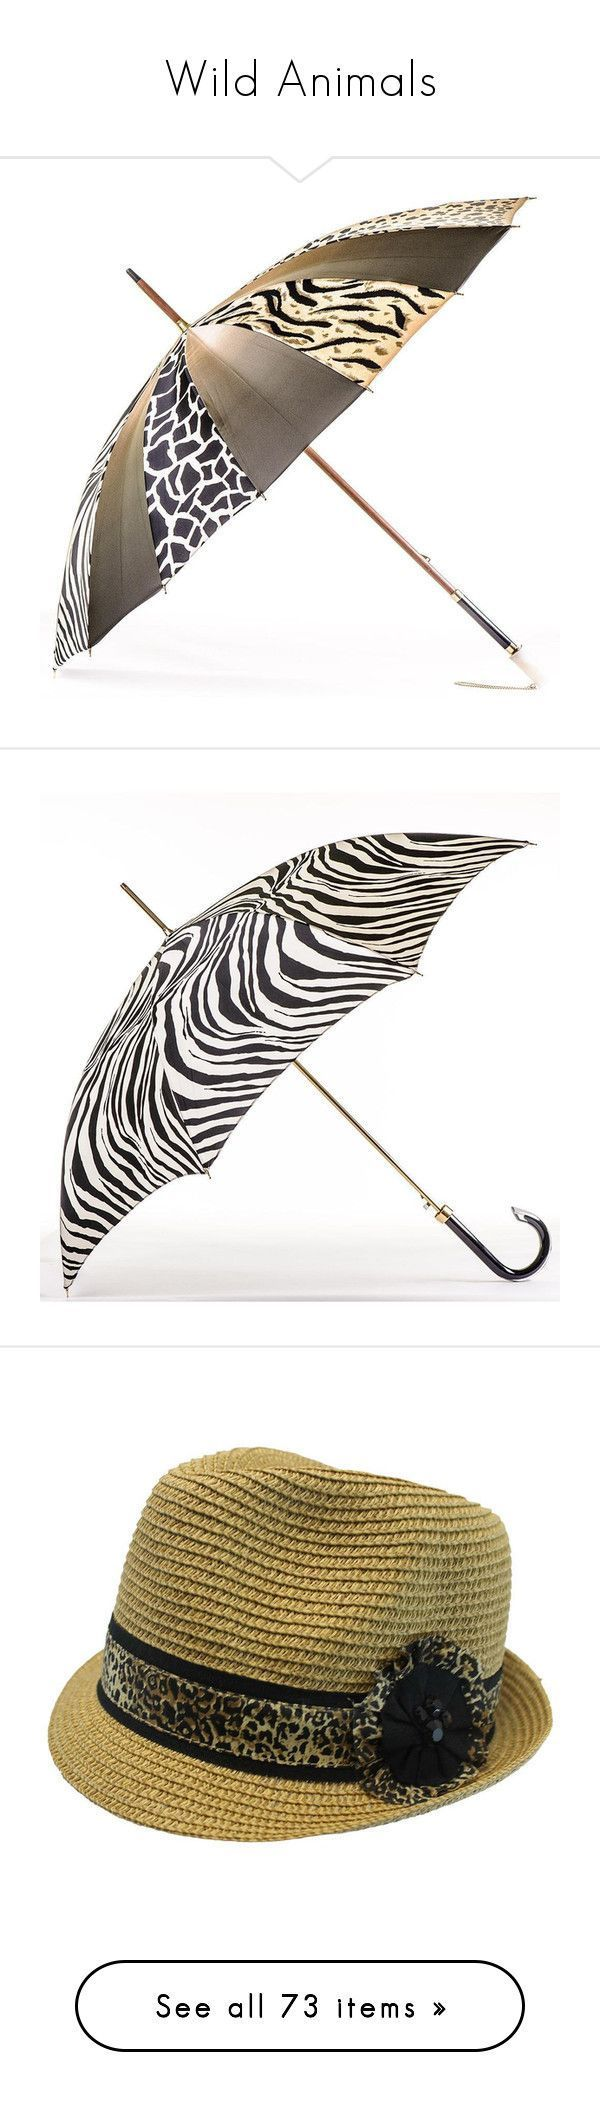 Wild Animals by maheanani ❤ liked on Polyvore featuring accessories, umbrellas, leopard print umbrella, zebra umbrella, zebra print umbrella, black umbrella, animal print umbrella, umbrella, cocktail umbrellas and clear umbrella #clearumbrella Wild Animals by maheanani ❤ liked on Polyvore featuring accessories, umbrellas, leopard print umbrella, zebra umbrella, zebra print umbrella, black umbrella, animal print umbrella, umbrella, cocktail umbrellas and clear umbrella #clearumbrella Wild A #clearumbrella